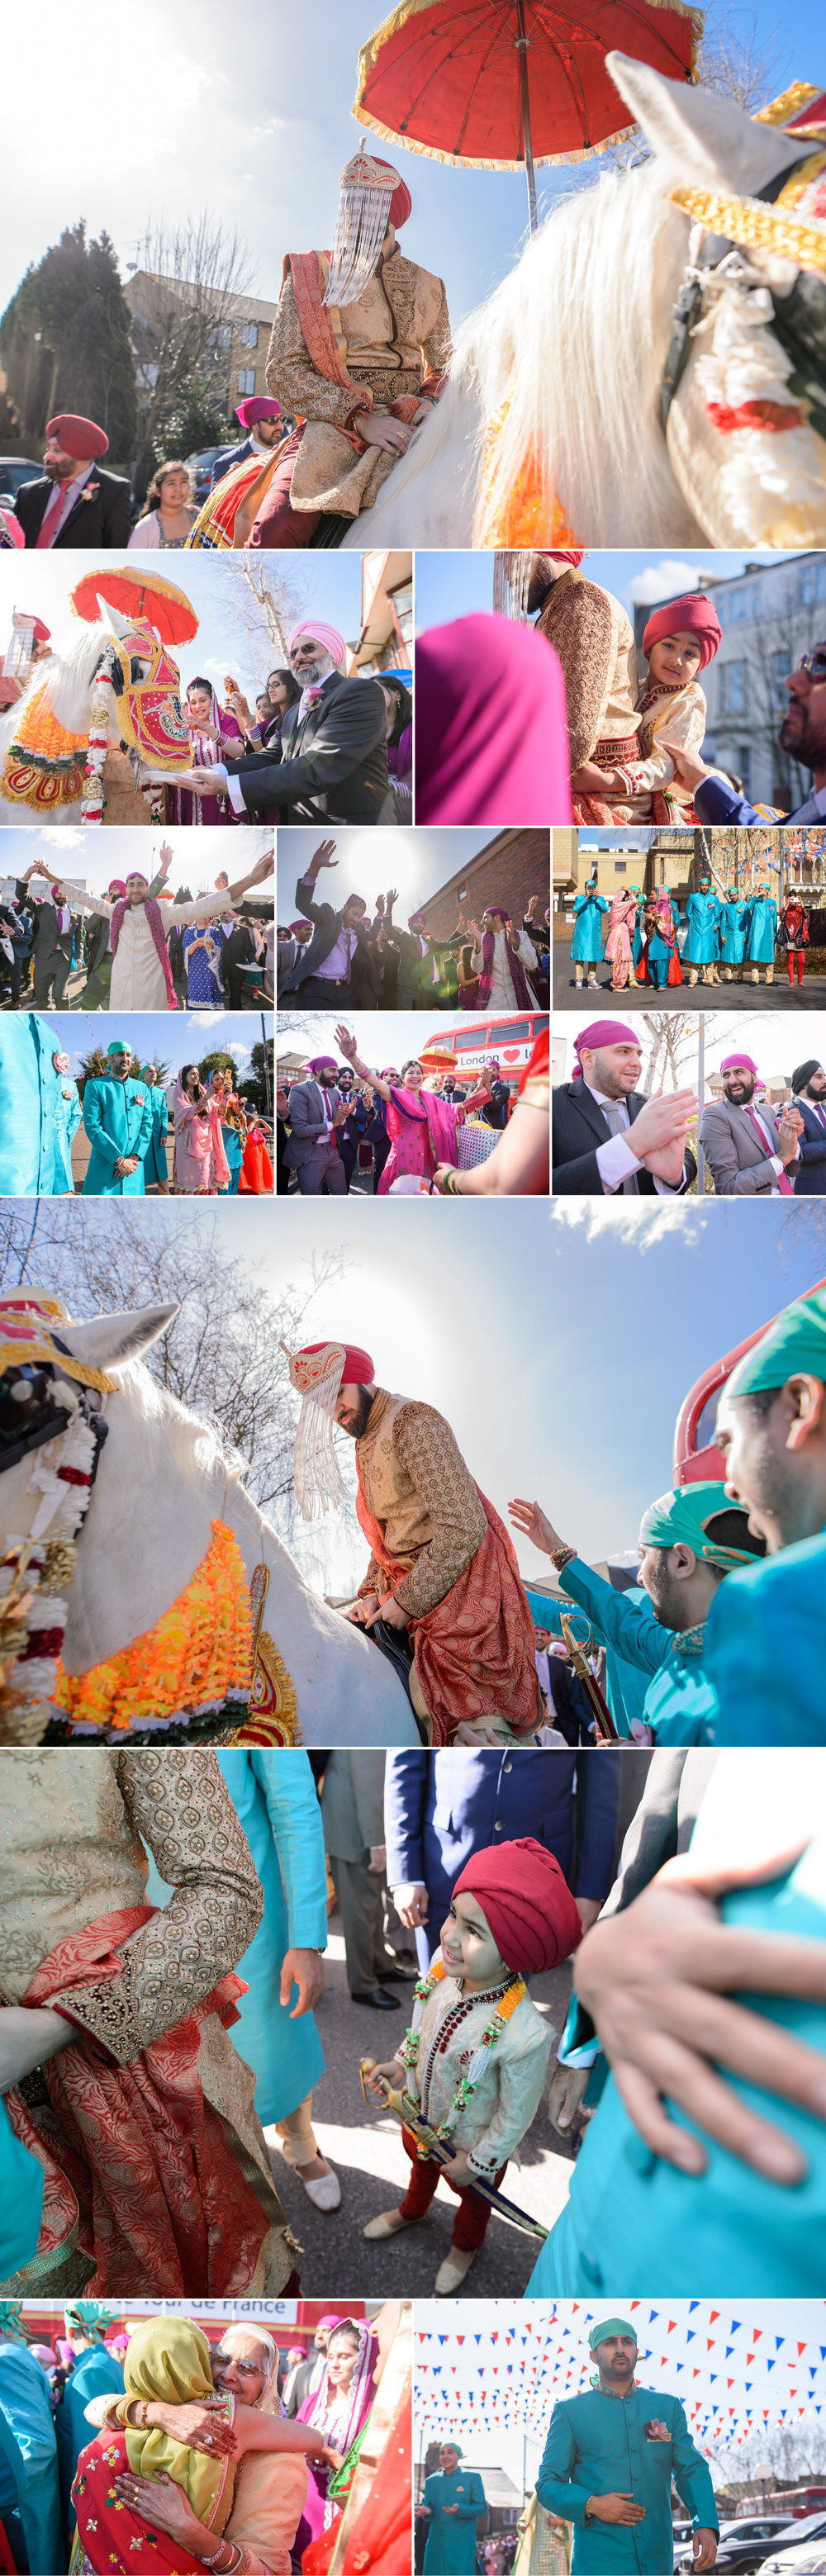 satnam photography sikh wedding ceremony alice way gurdwara london hounslow wedding photography-3